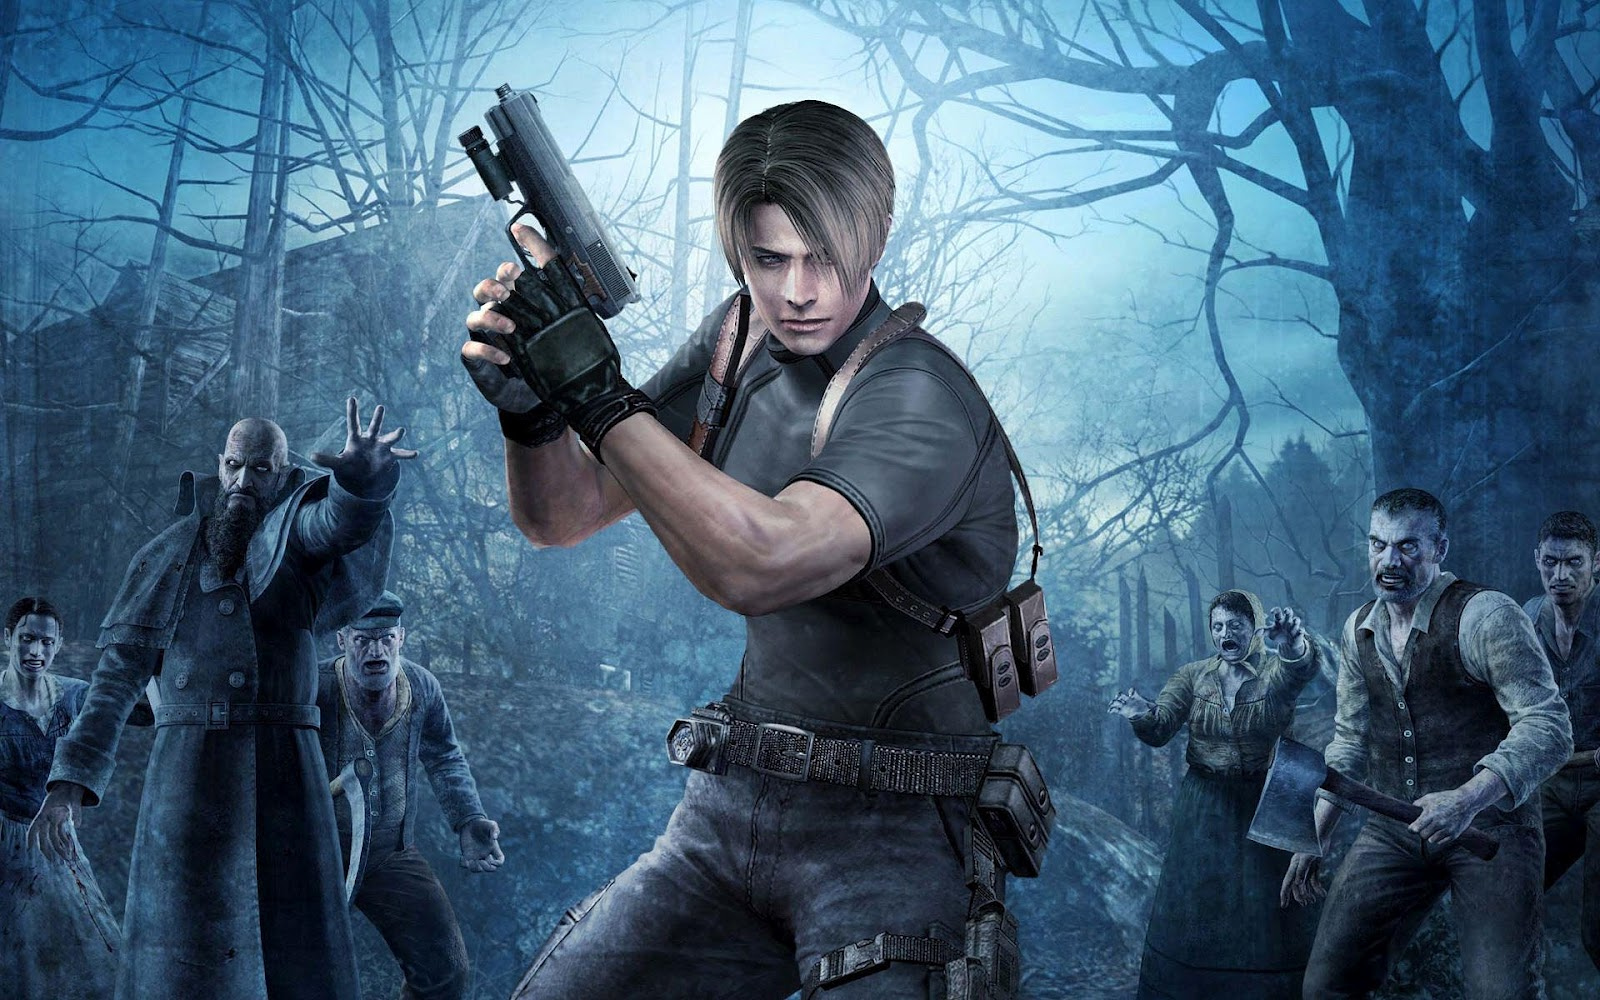 Download Jogo Resident Evil 4 PC Completo Torrent